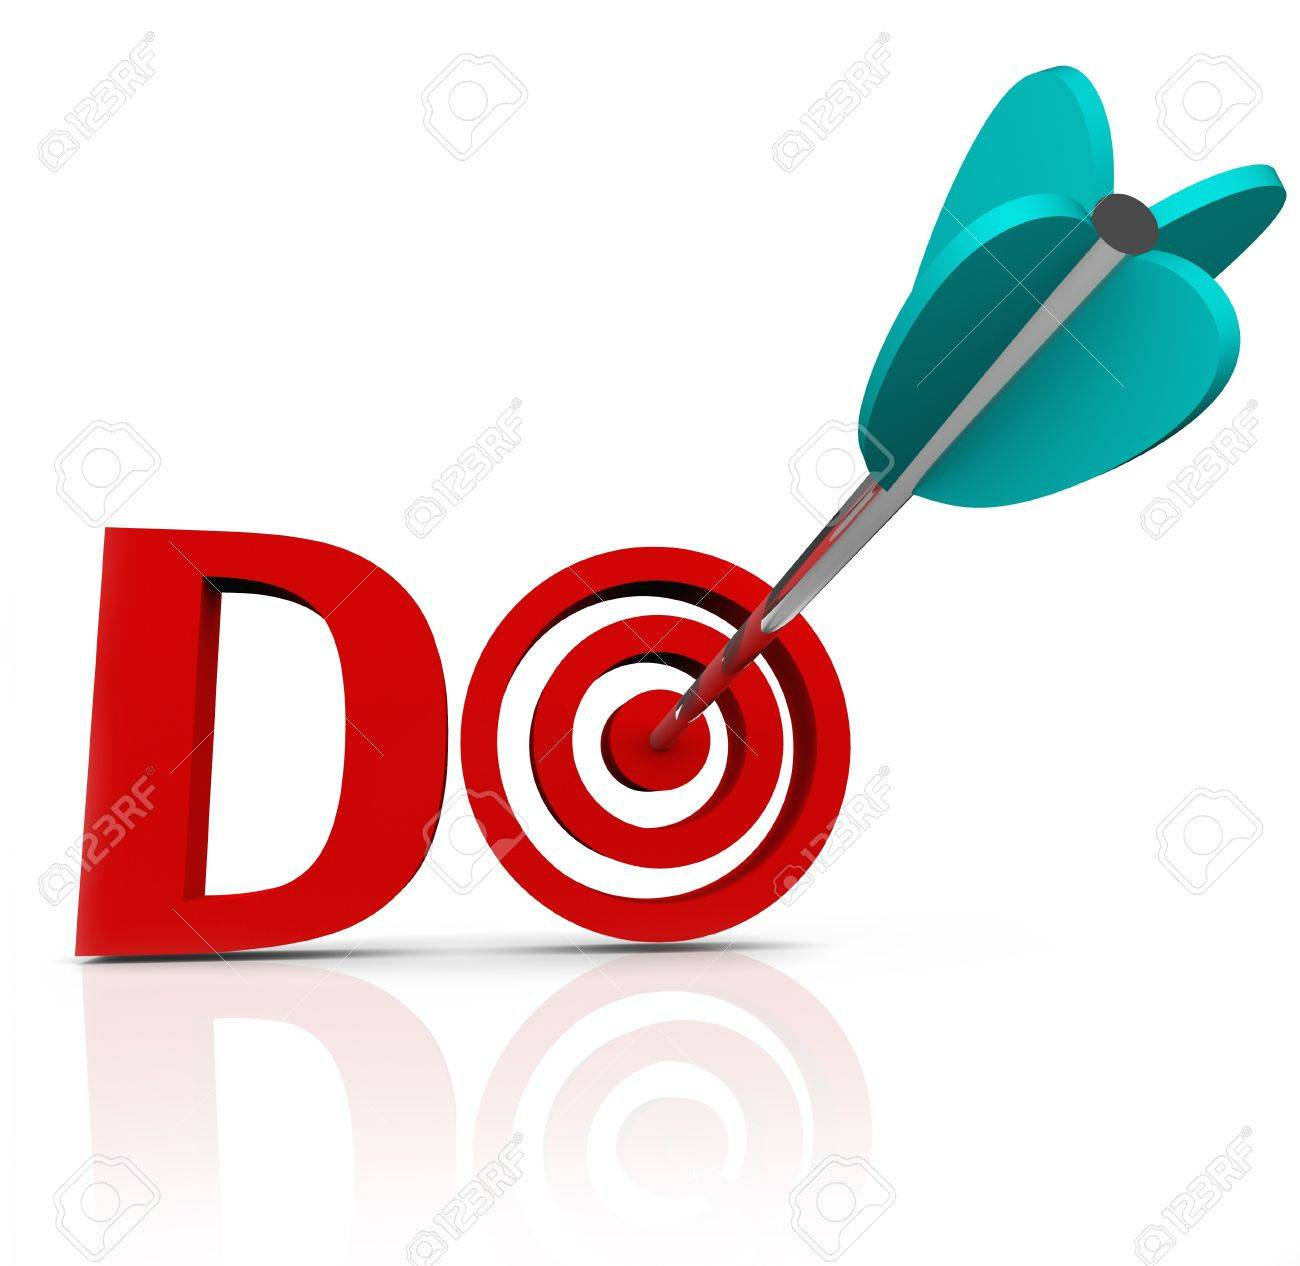 The word Do in red 3d letters with an arrow in a bulls-eye to symbolize taking action and having initiative to act in achieving or accomplishing a goal or mission Stock Photo - 20622189